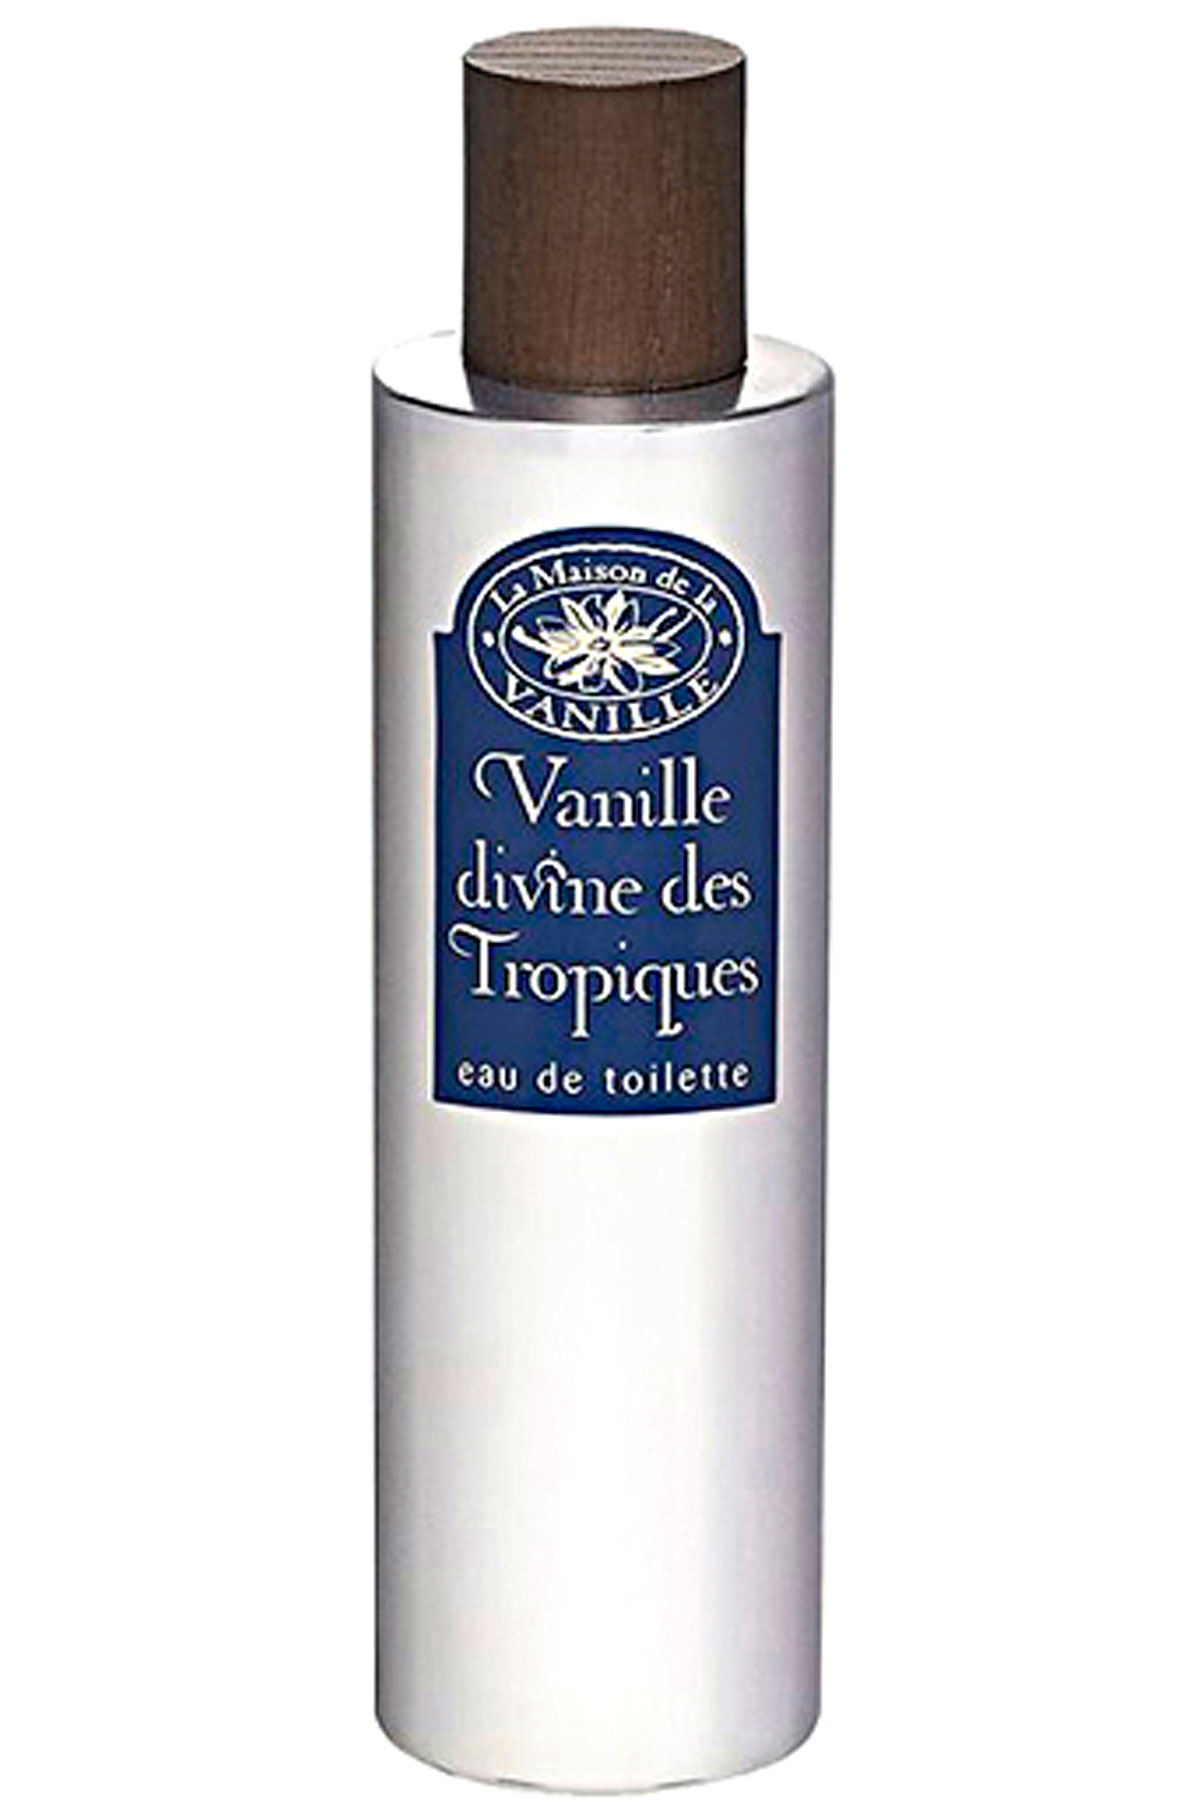 La Maison de la Vanille Fragrances for Women On Sale, Vanille Divine Des Tropiques - Eau De Toilette - 100 Ml, 2019, 100 ml